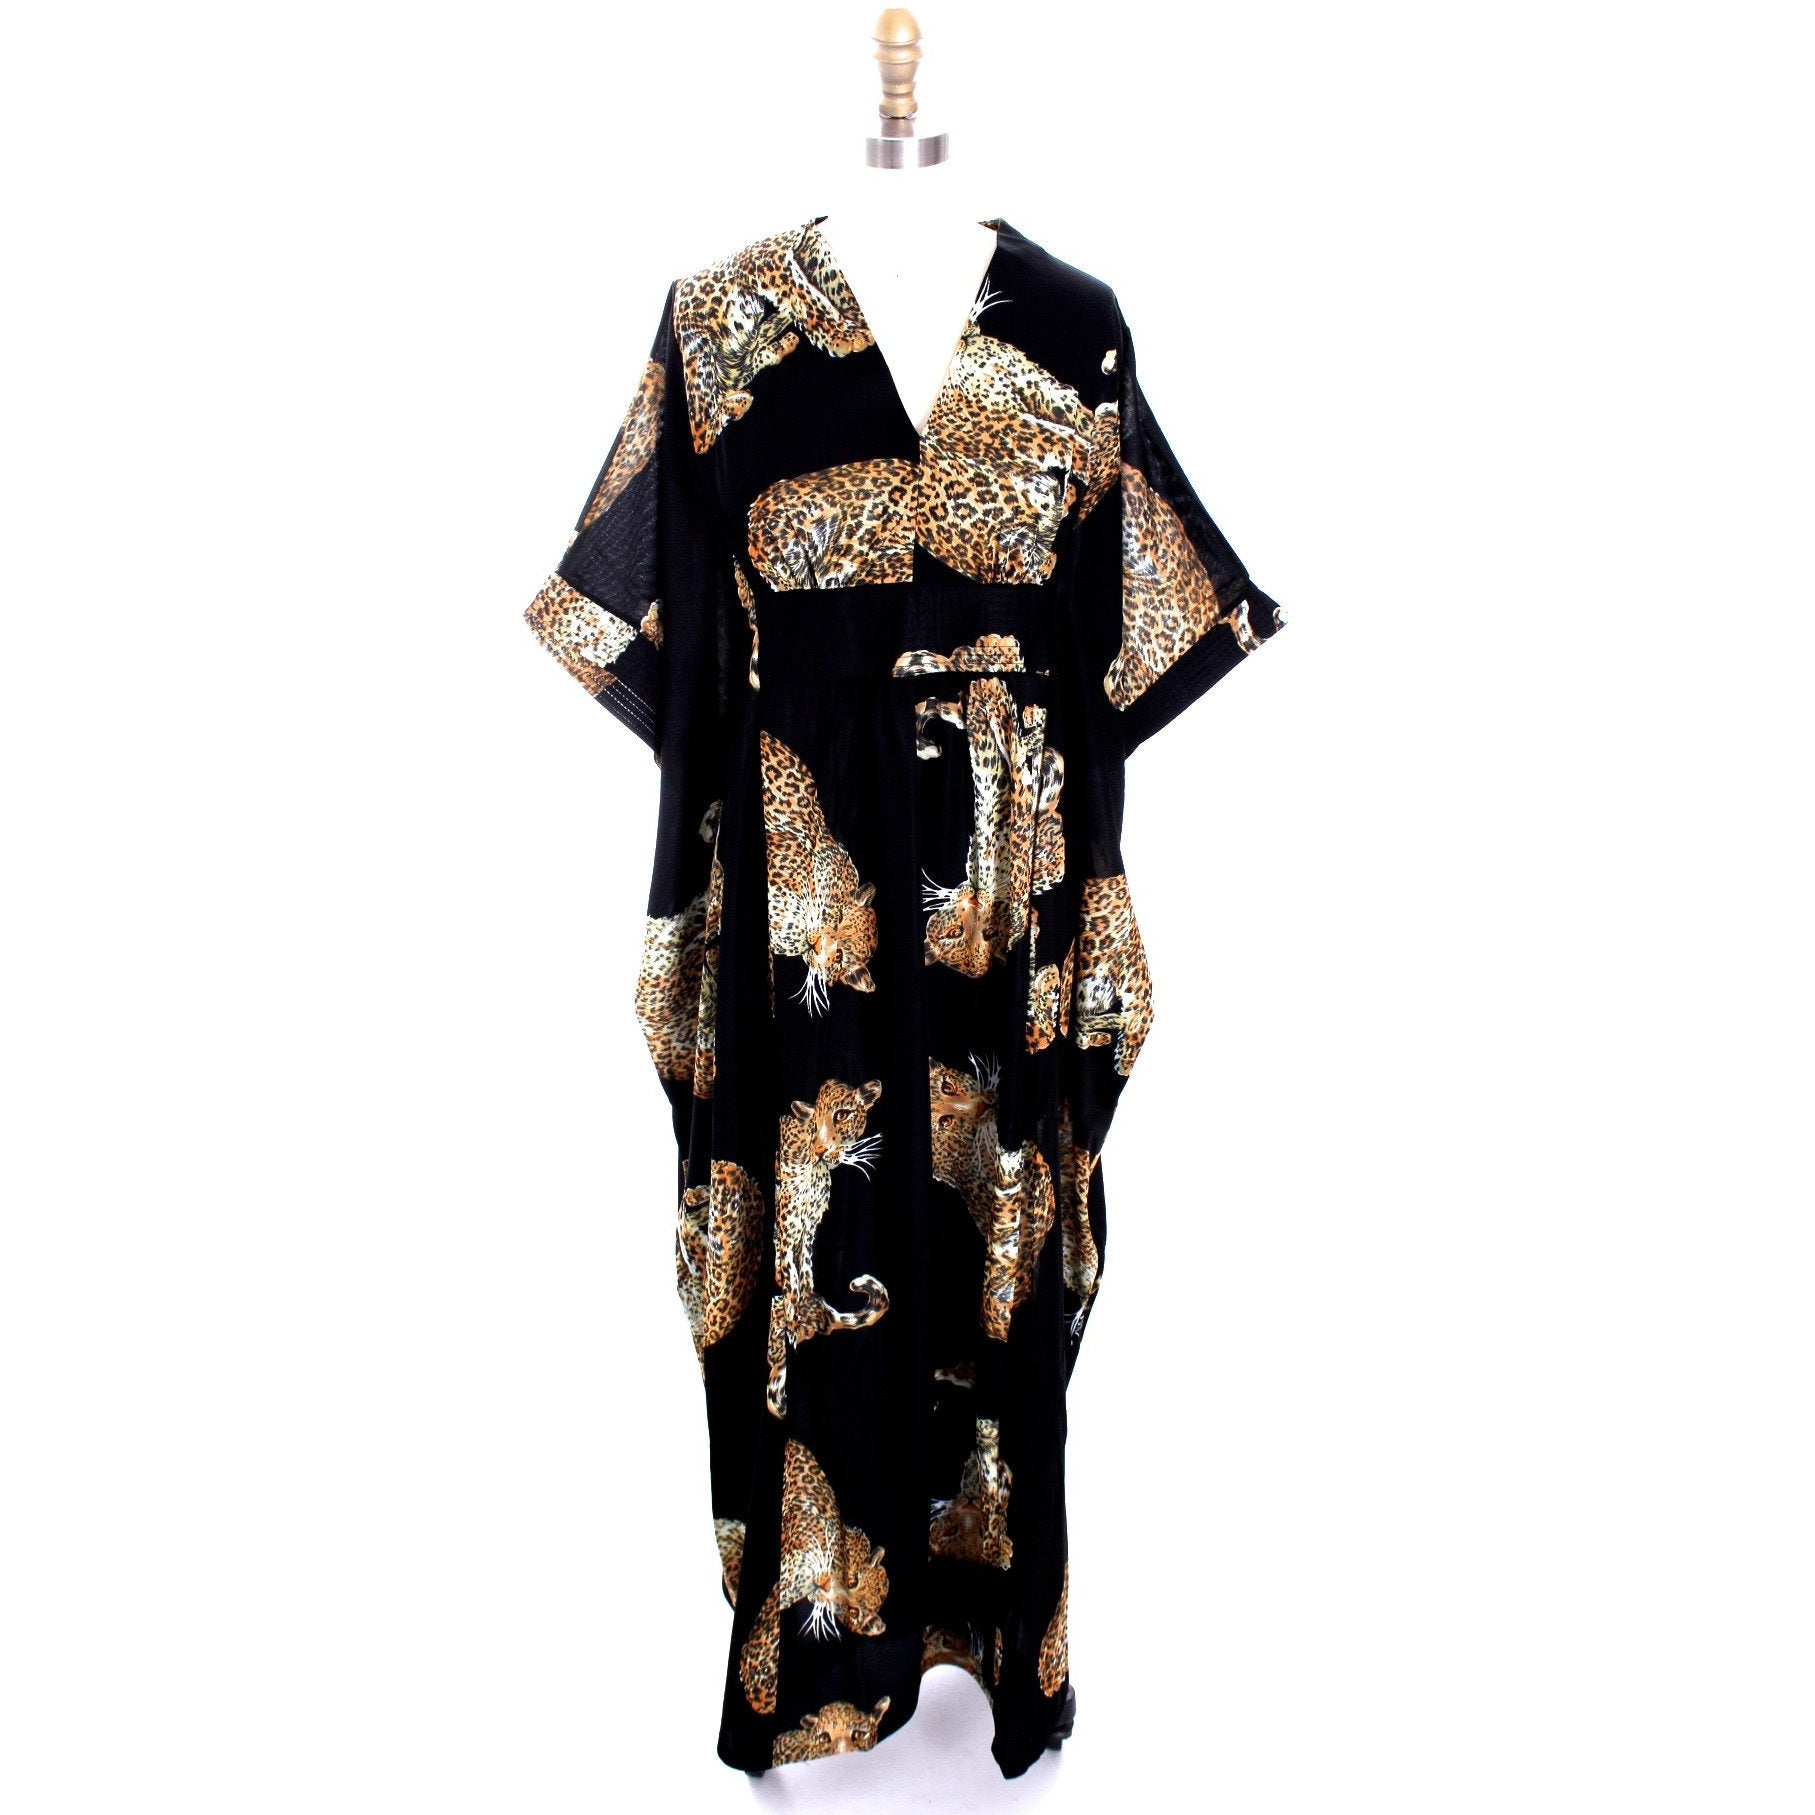 Vintage 1970s Lounge Caftan Robe Cat Leopard Animal Print NWT Butterfield 8 Nylon O/S - The Best Vintage Clothing  - 1